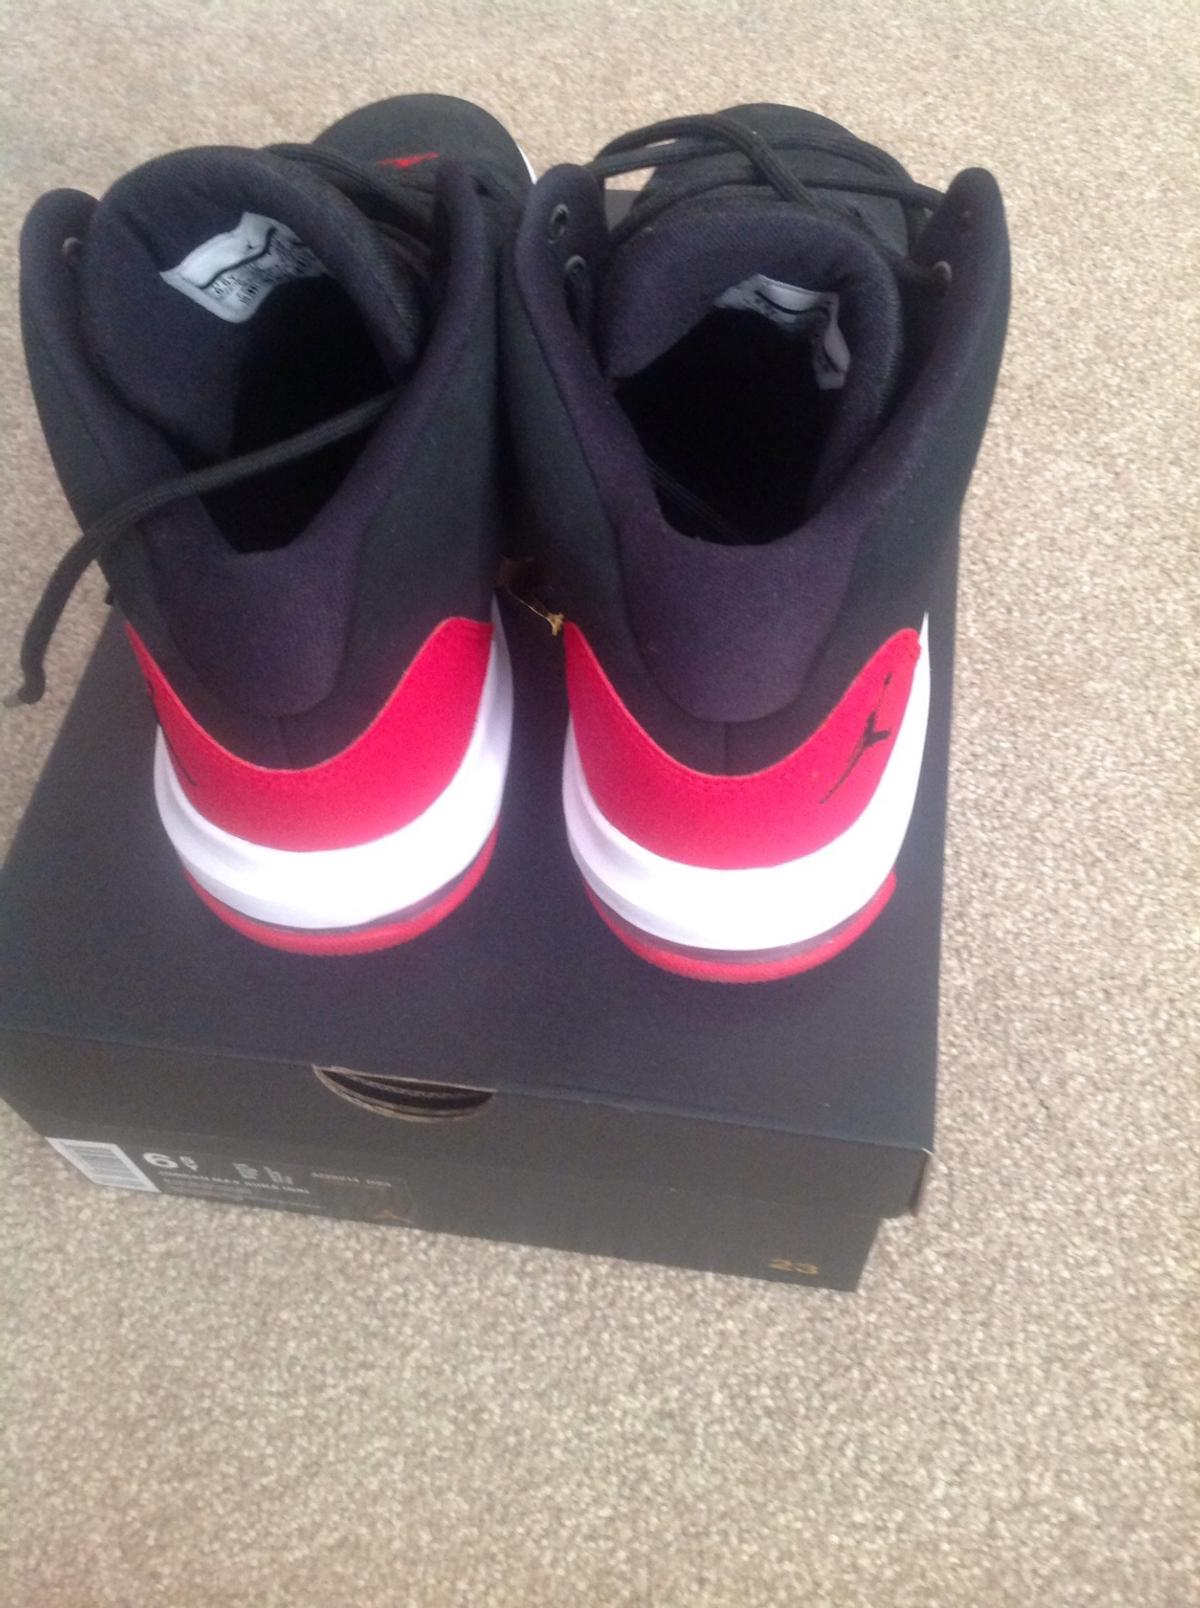 133968ea0bc Jordan Max Aura trainers - uk size 6 in BR7 Bromley for £30.00 for ...